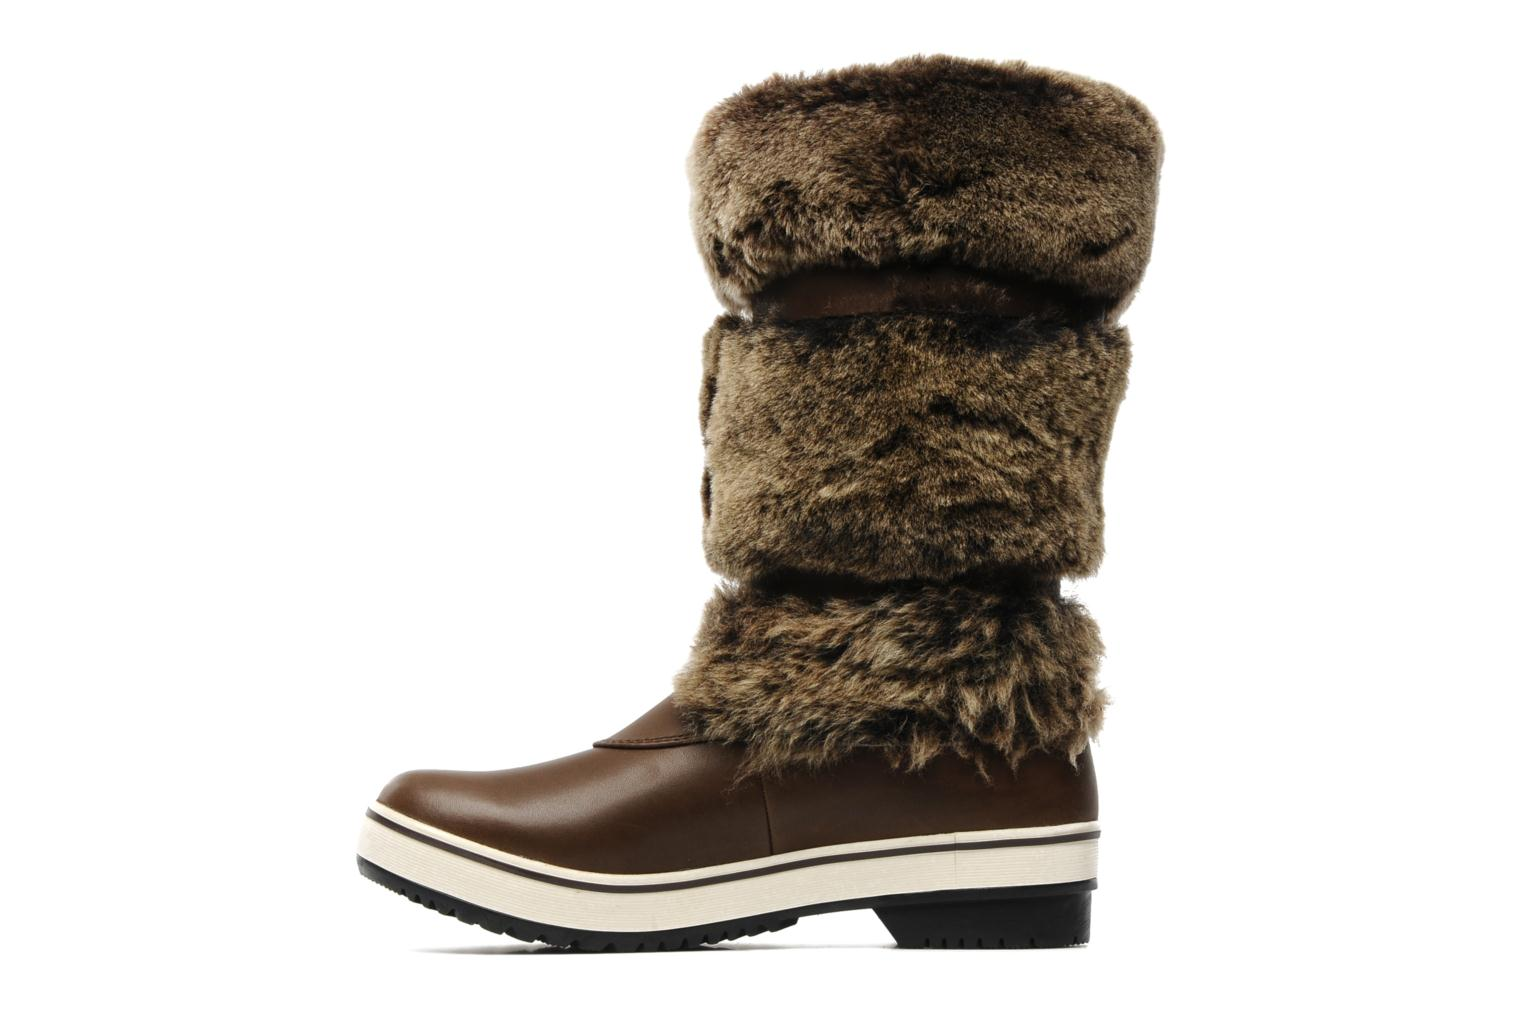 ugg boots company information